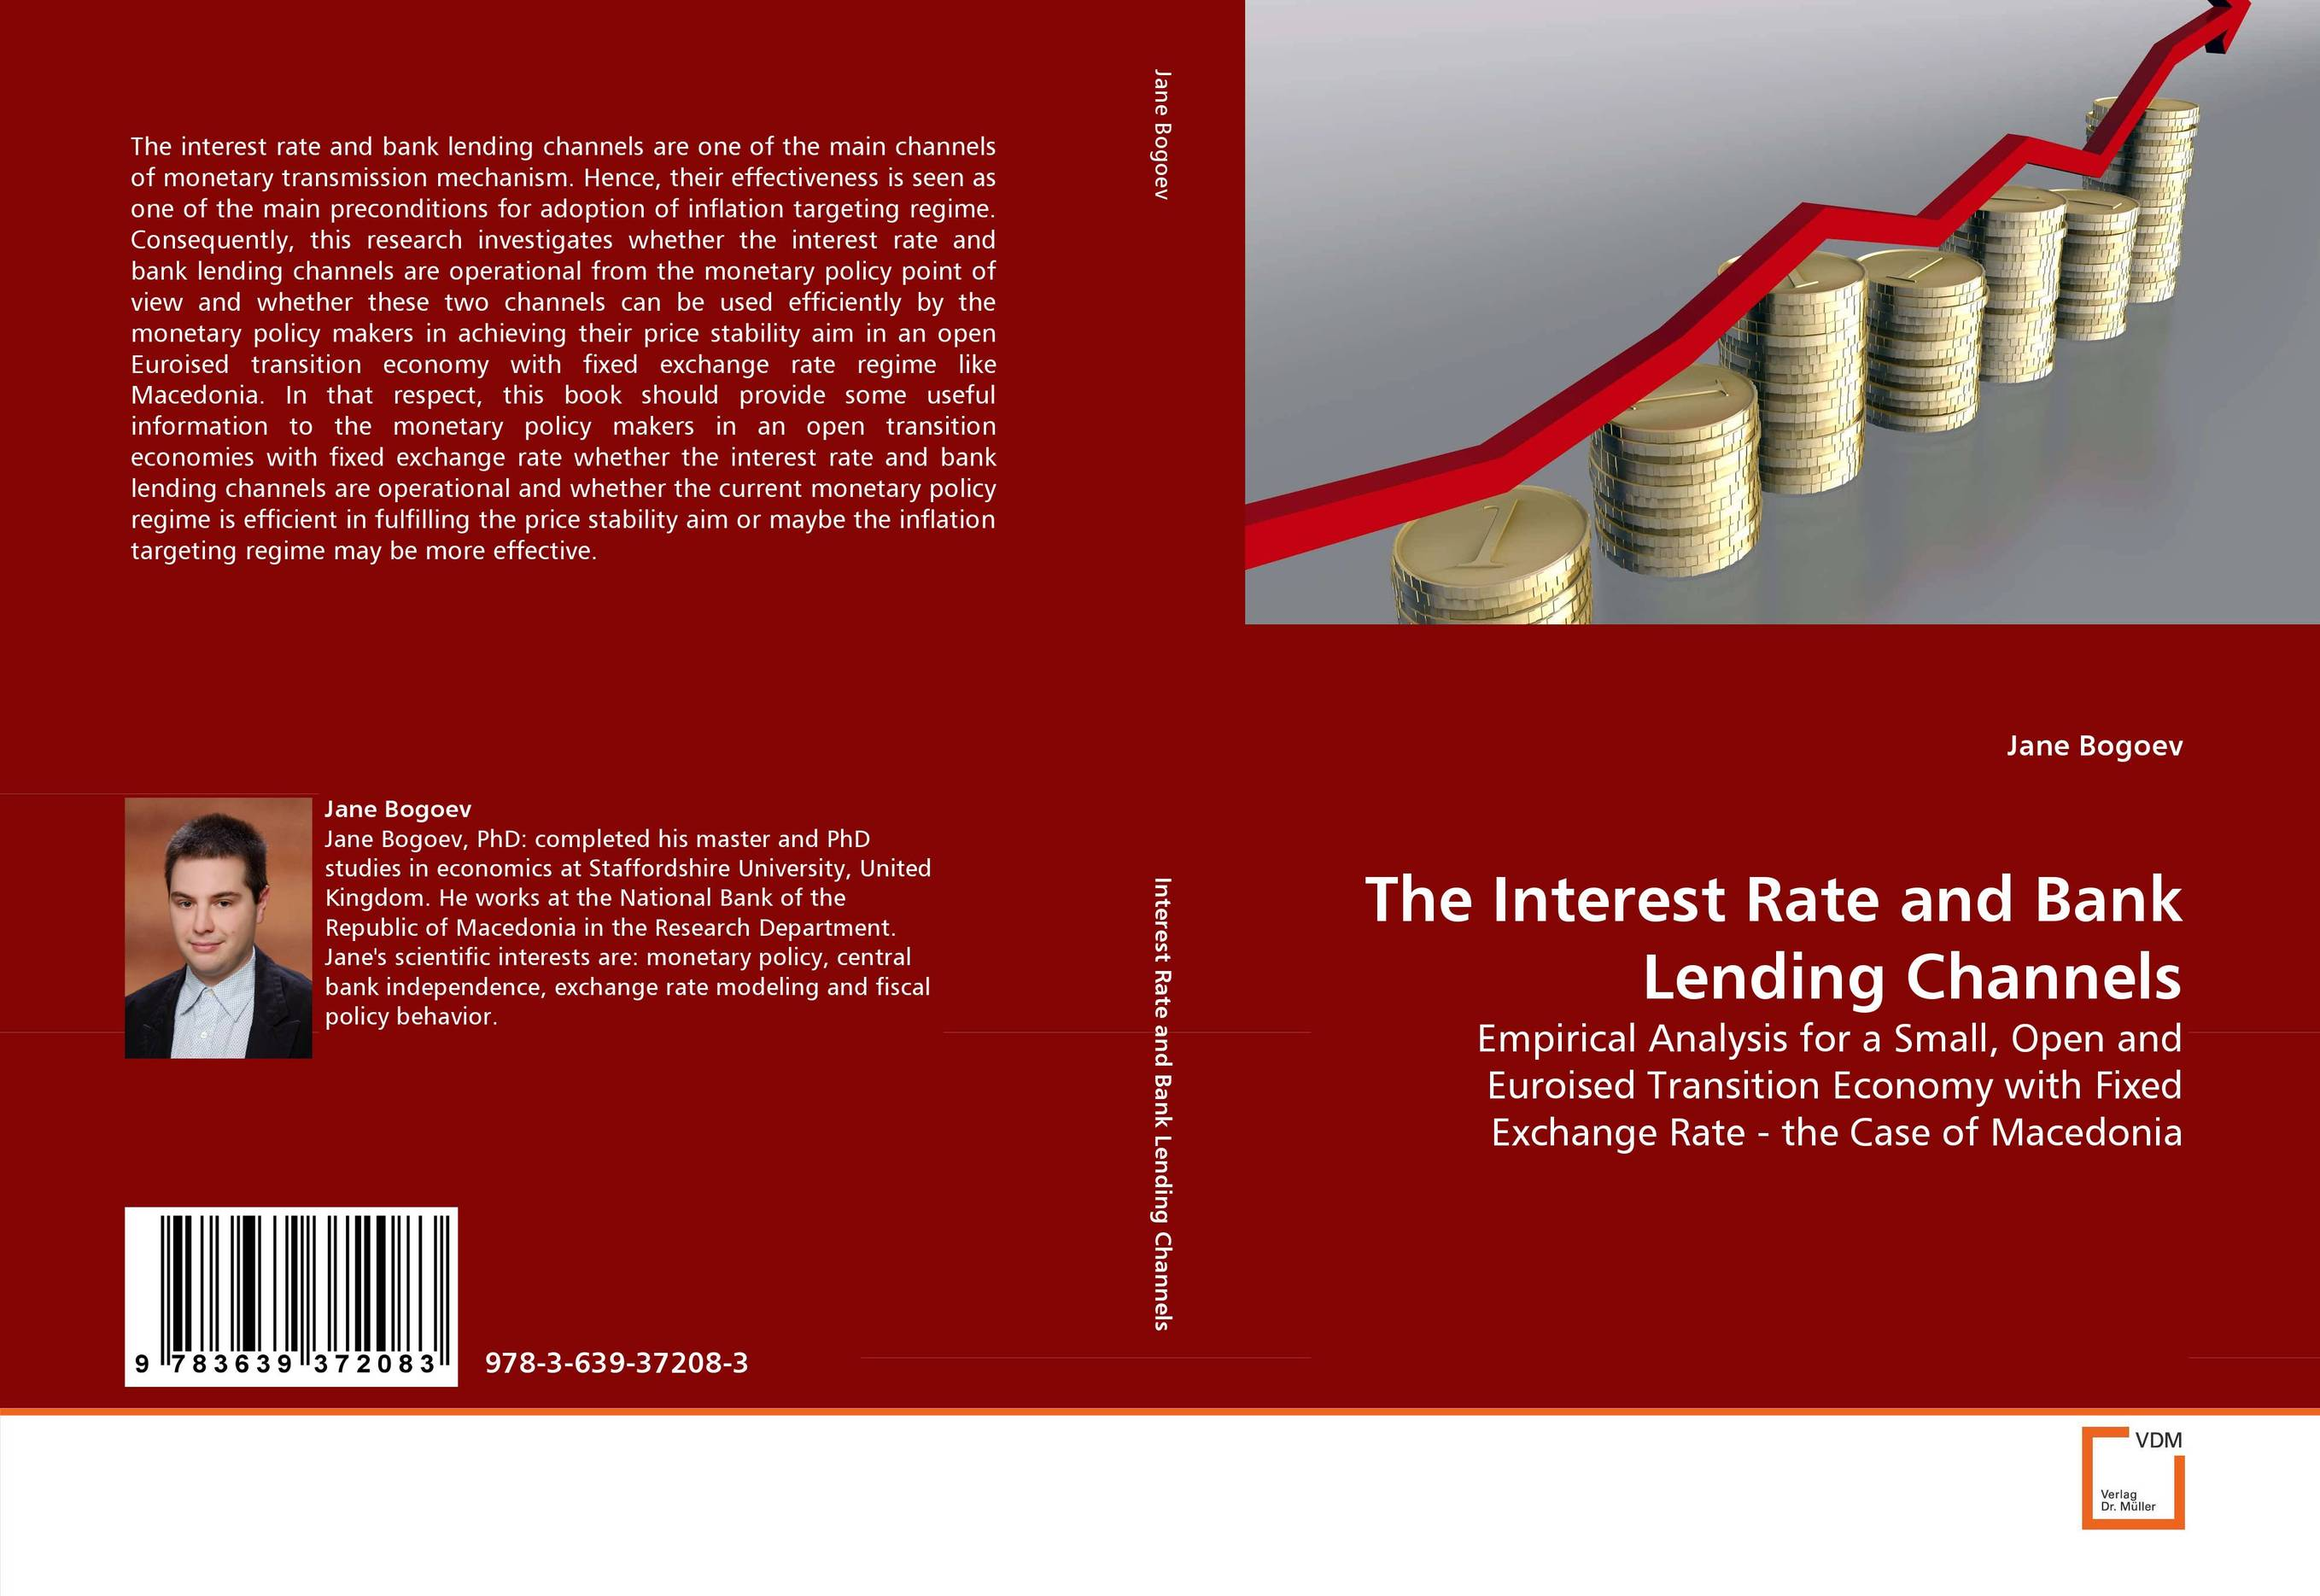 The Interest Rate and Bank Lending Channels rakesh kumar tiwari and rajendra prasad ojha conformation and stability of mixed dna triplex